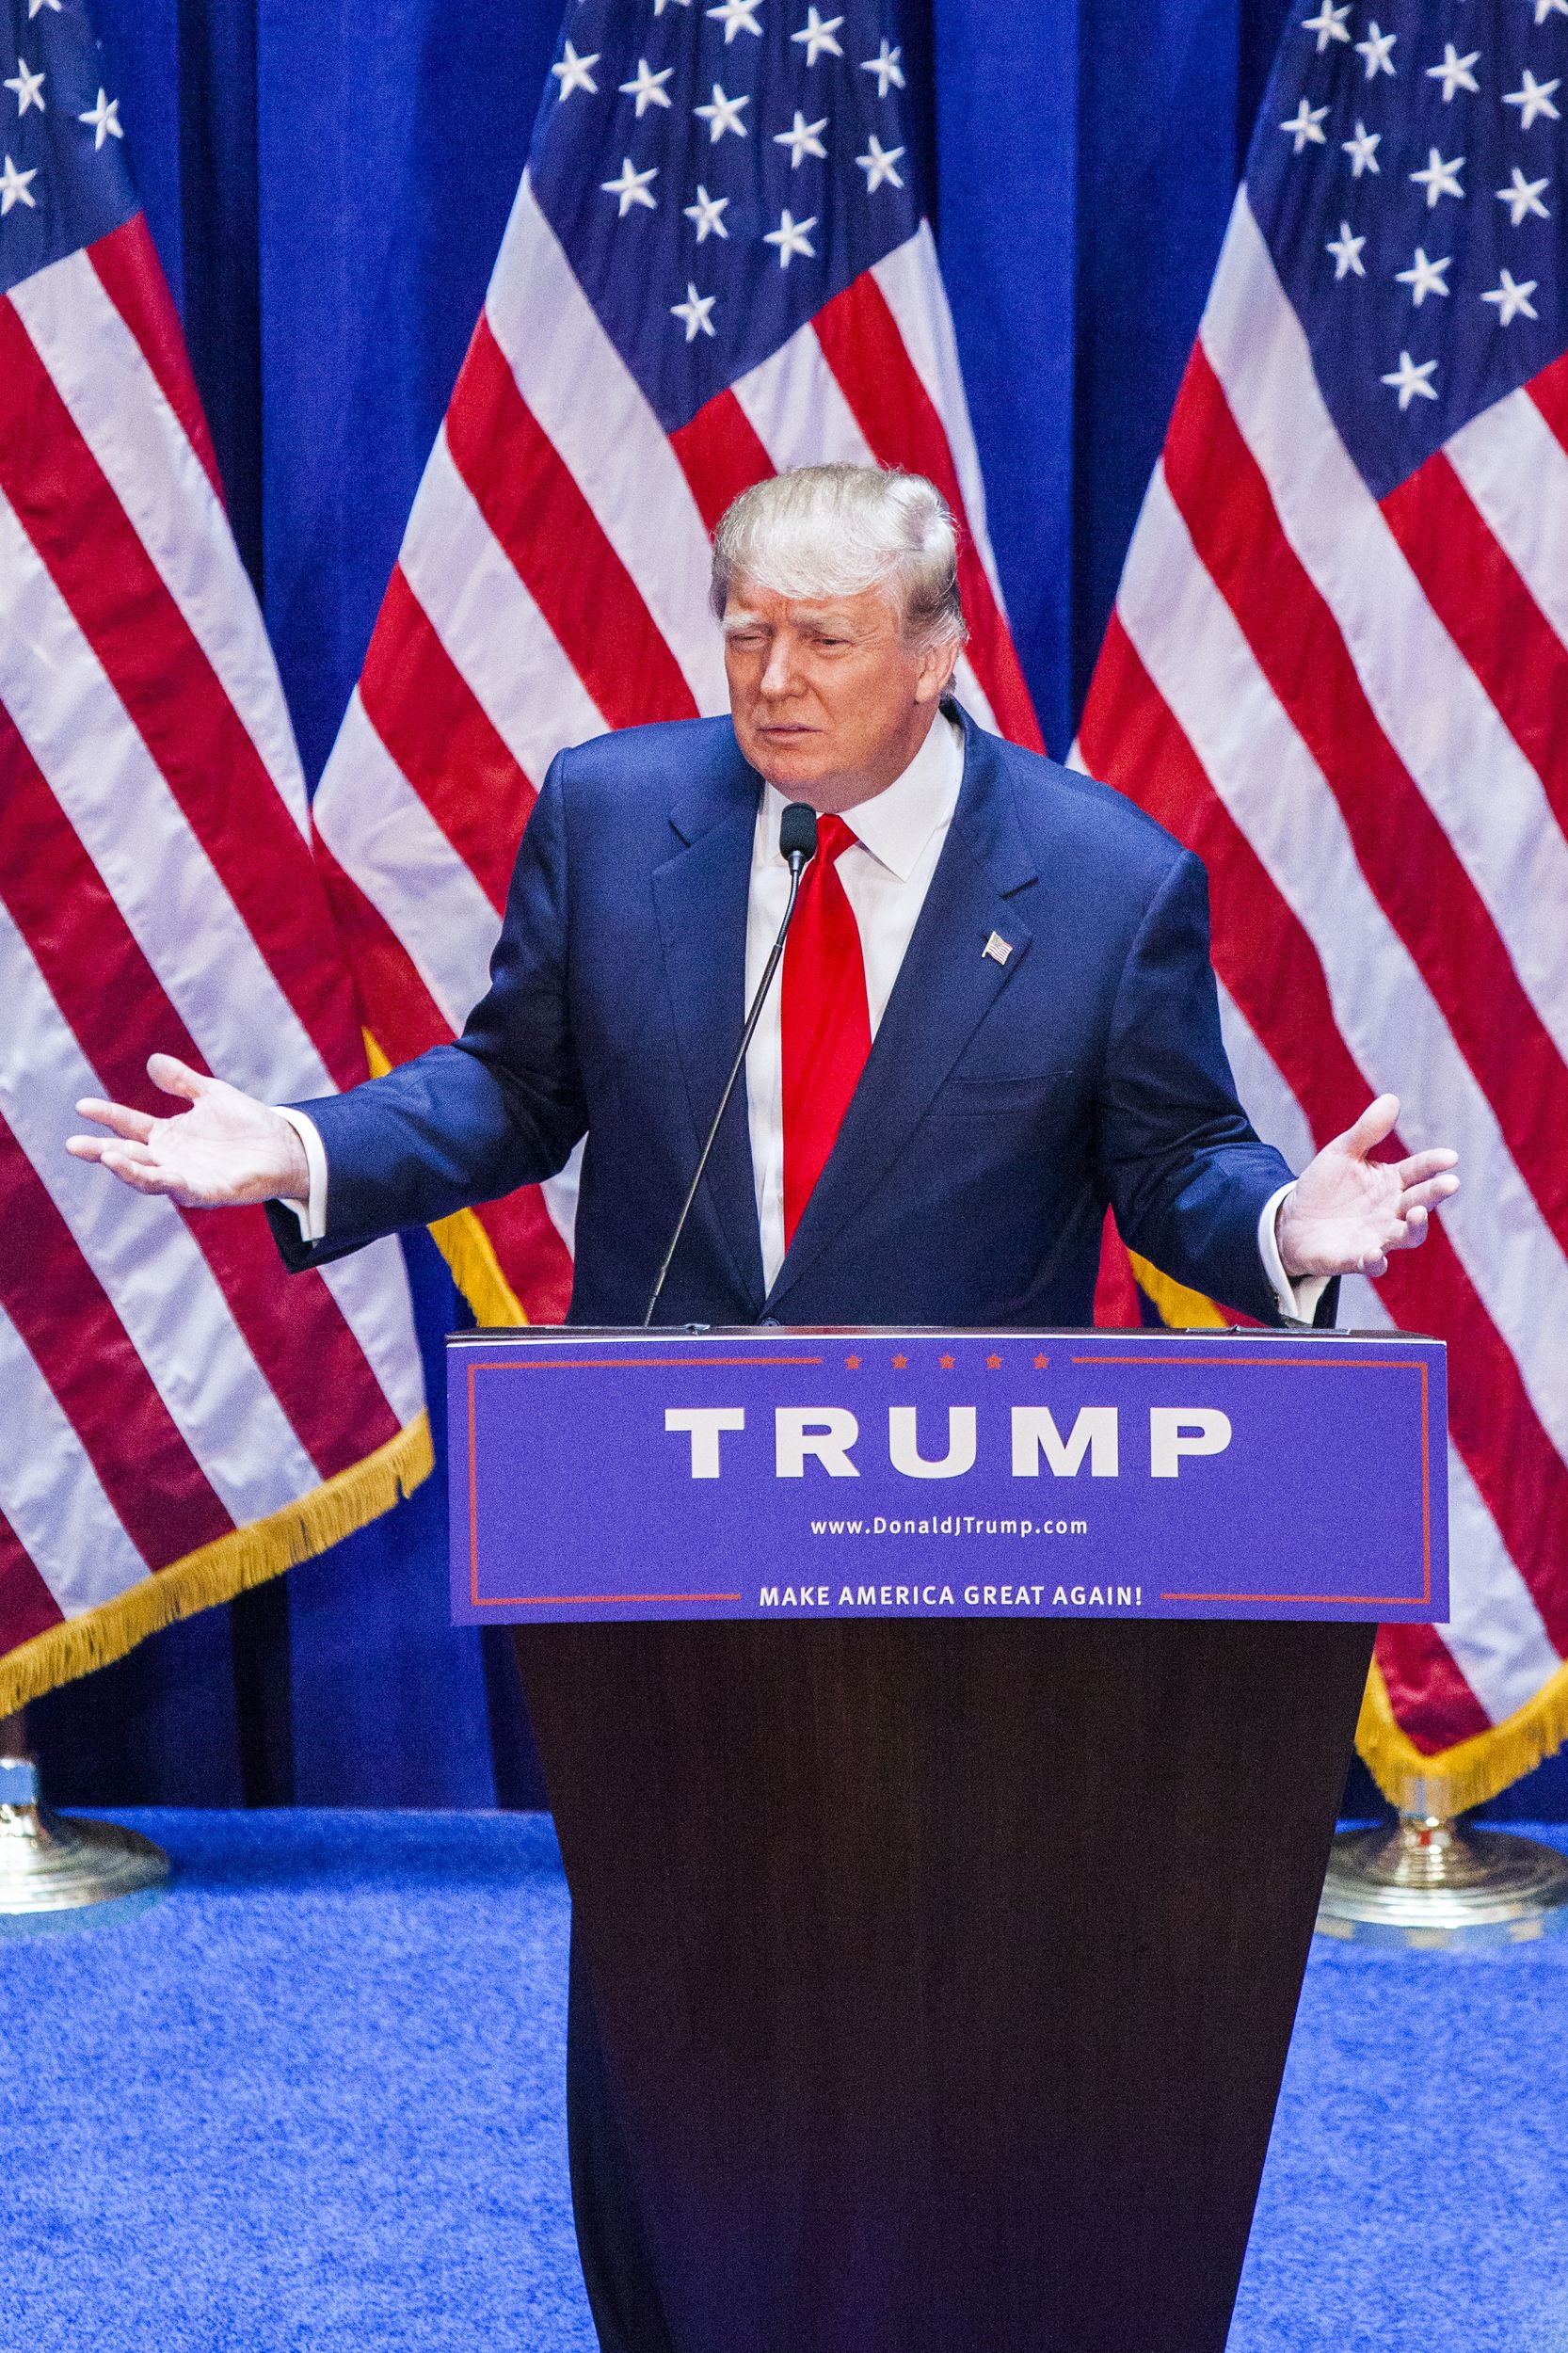 Trump announces his candidacy for president on June 16, 2015 at Trump Tower in New York City.